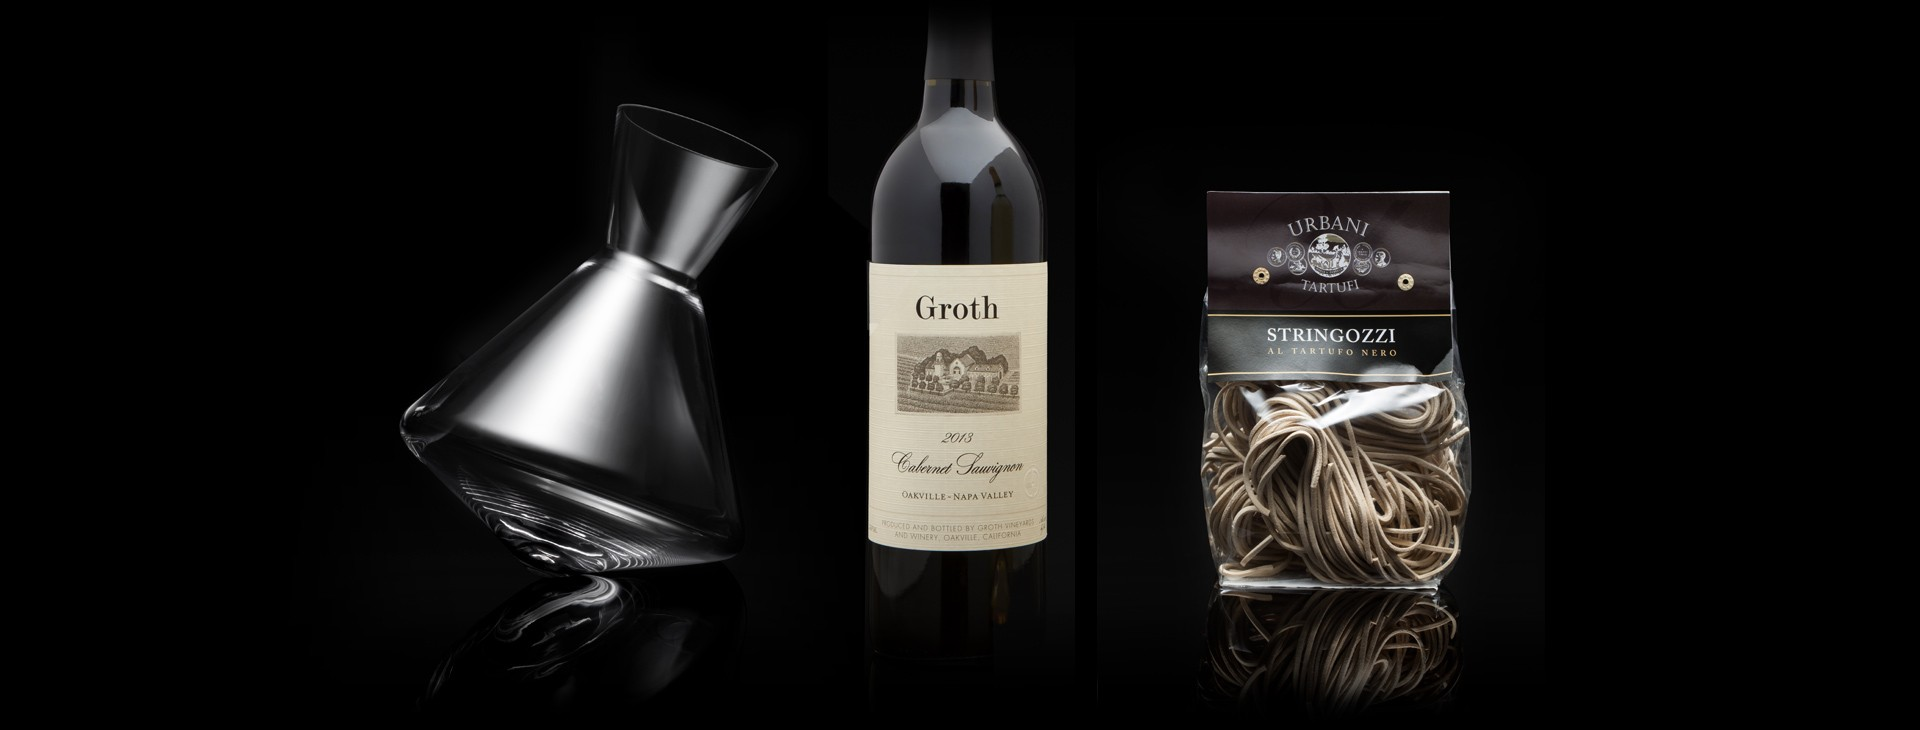 Groth Oakville Cabernet with Sempli Decanter, and Truffle Stringozzi Pasta